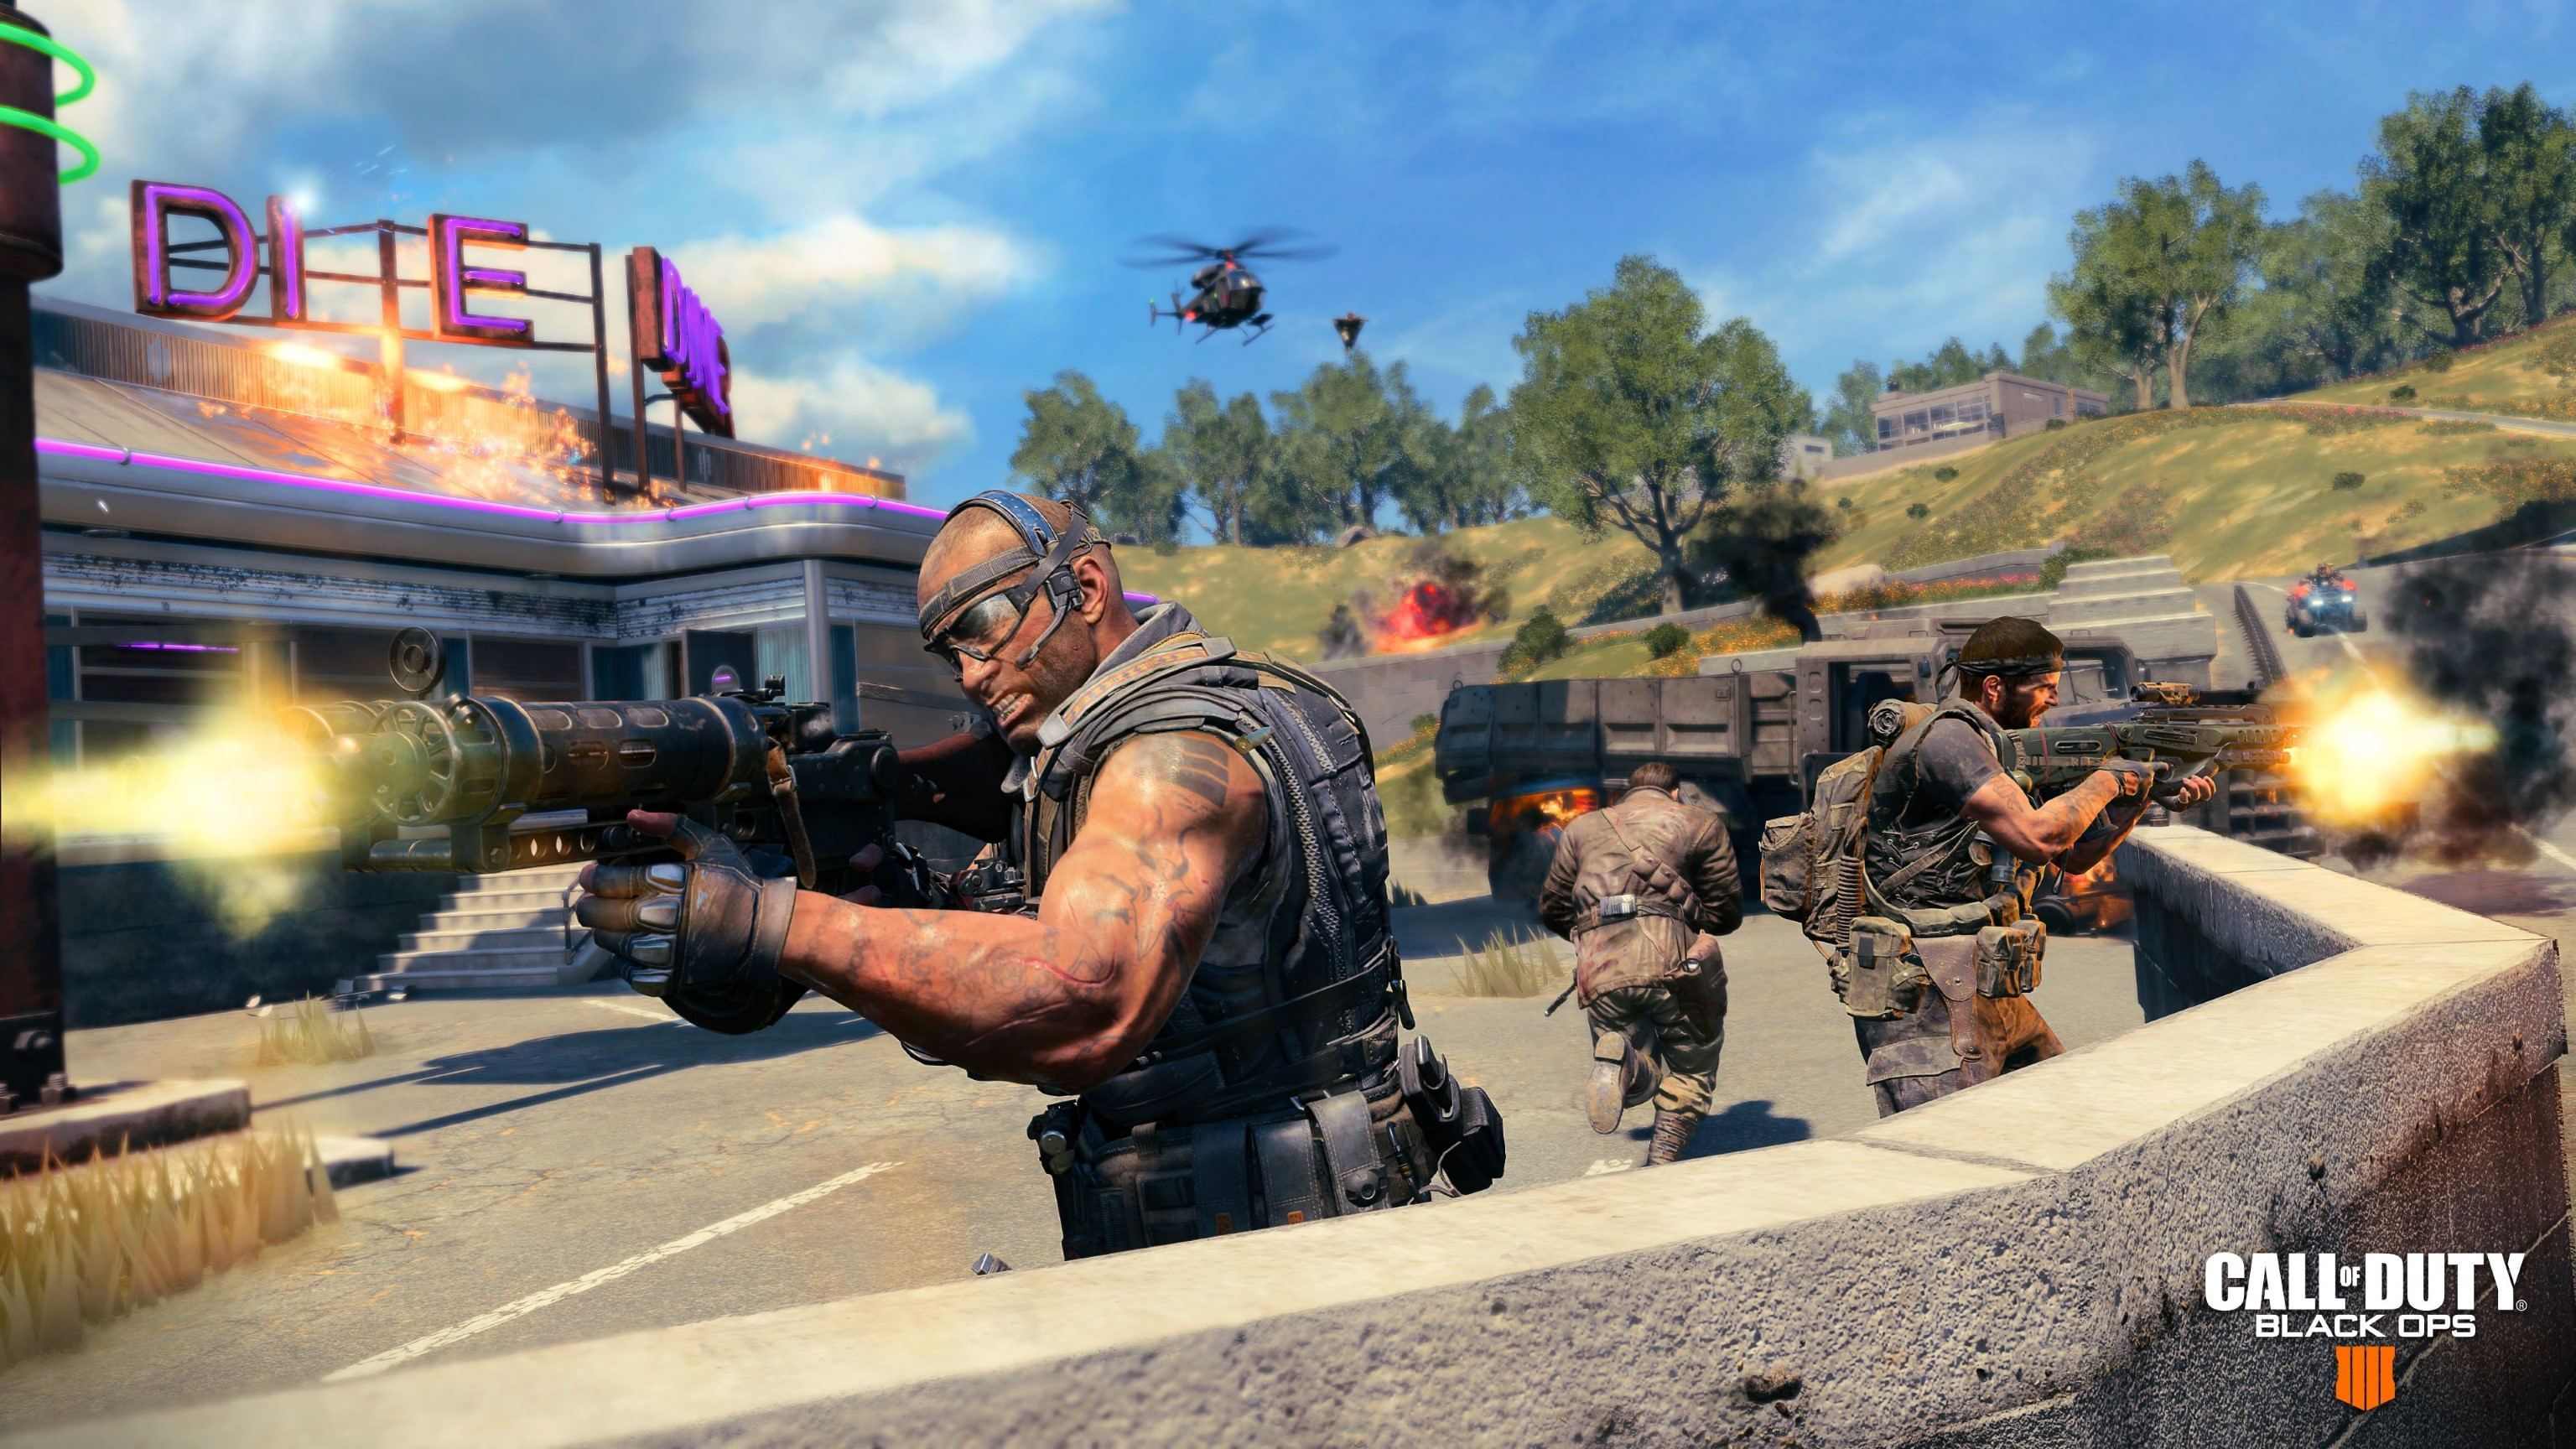 Call of Duty Black Ops 4 Blackout (4)